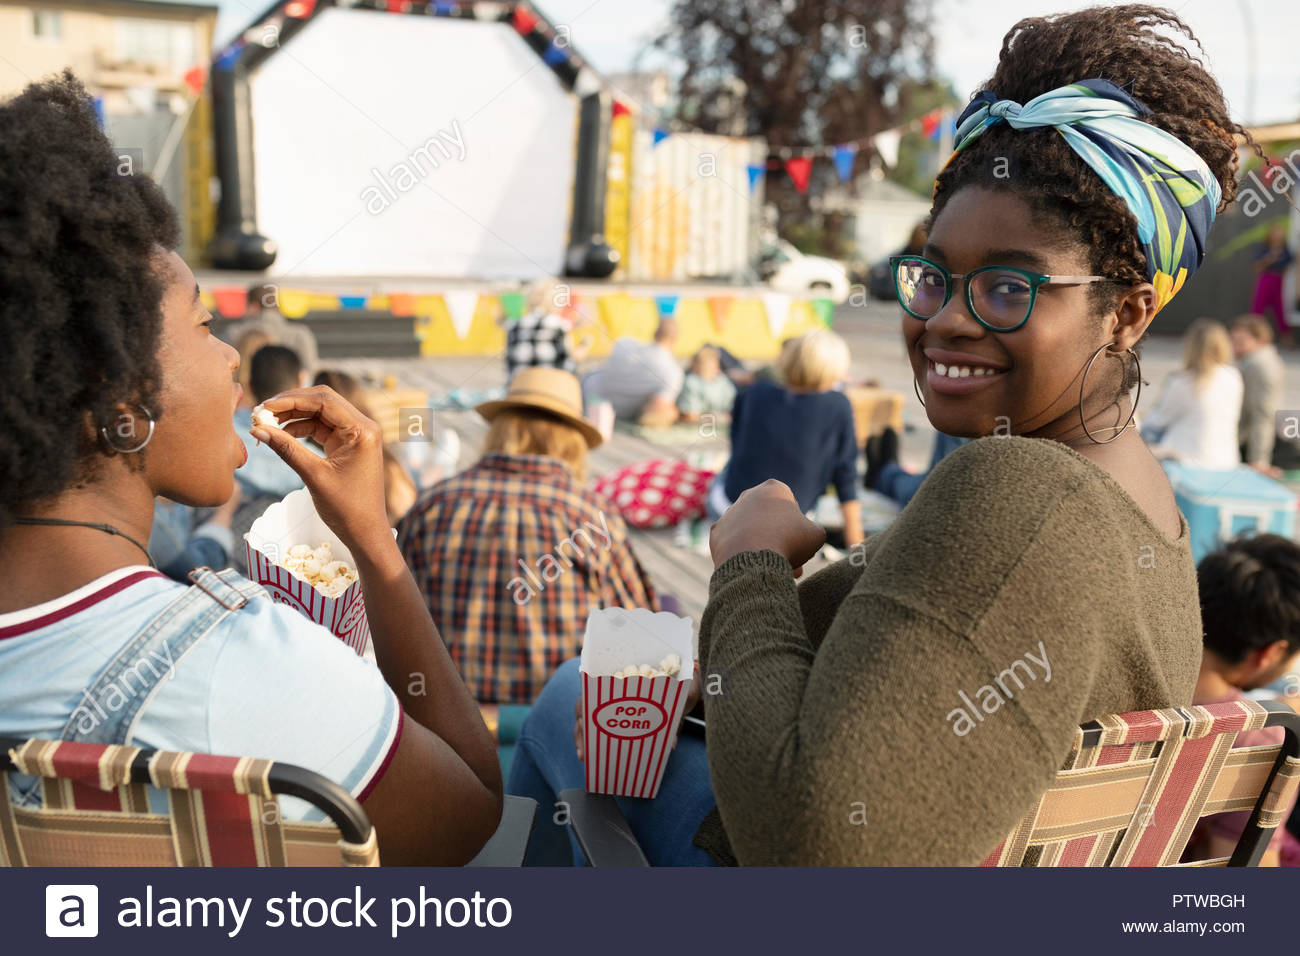 Portrait smiling young woman eating popcorn, enjoying movie in the park - Stock Image